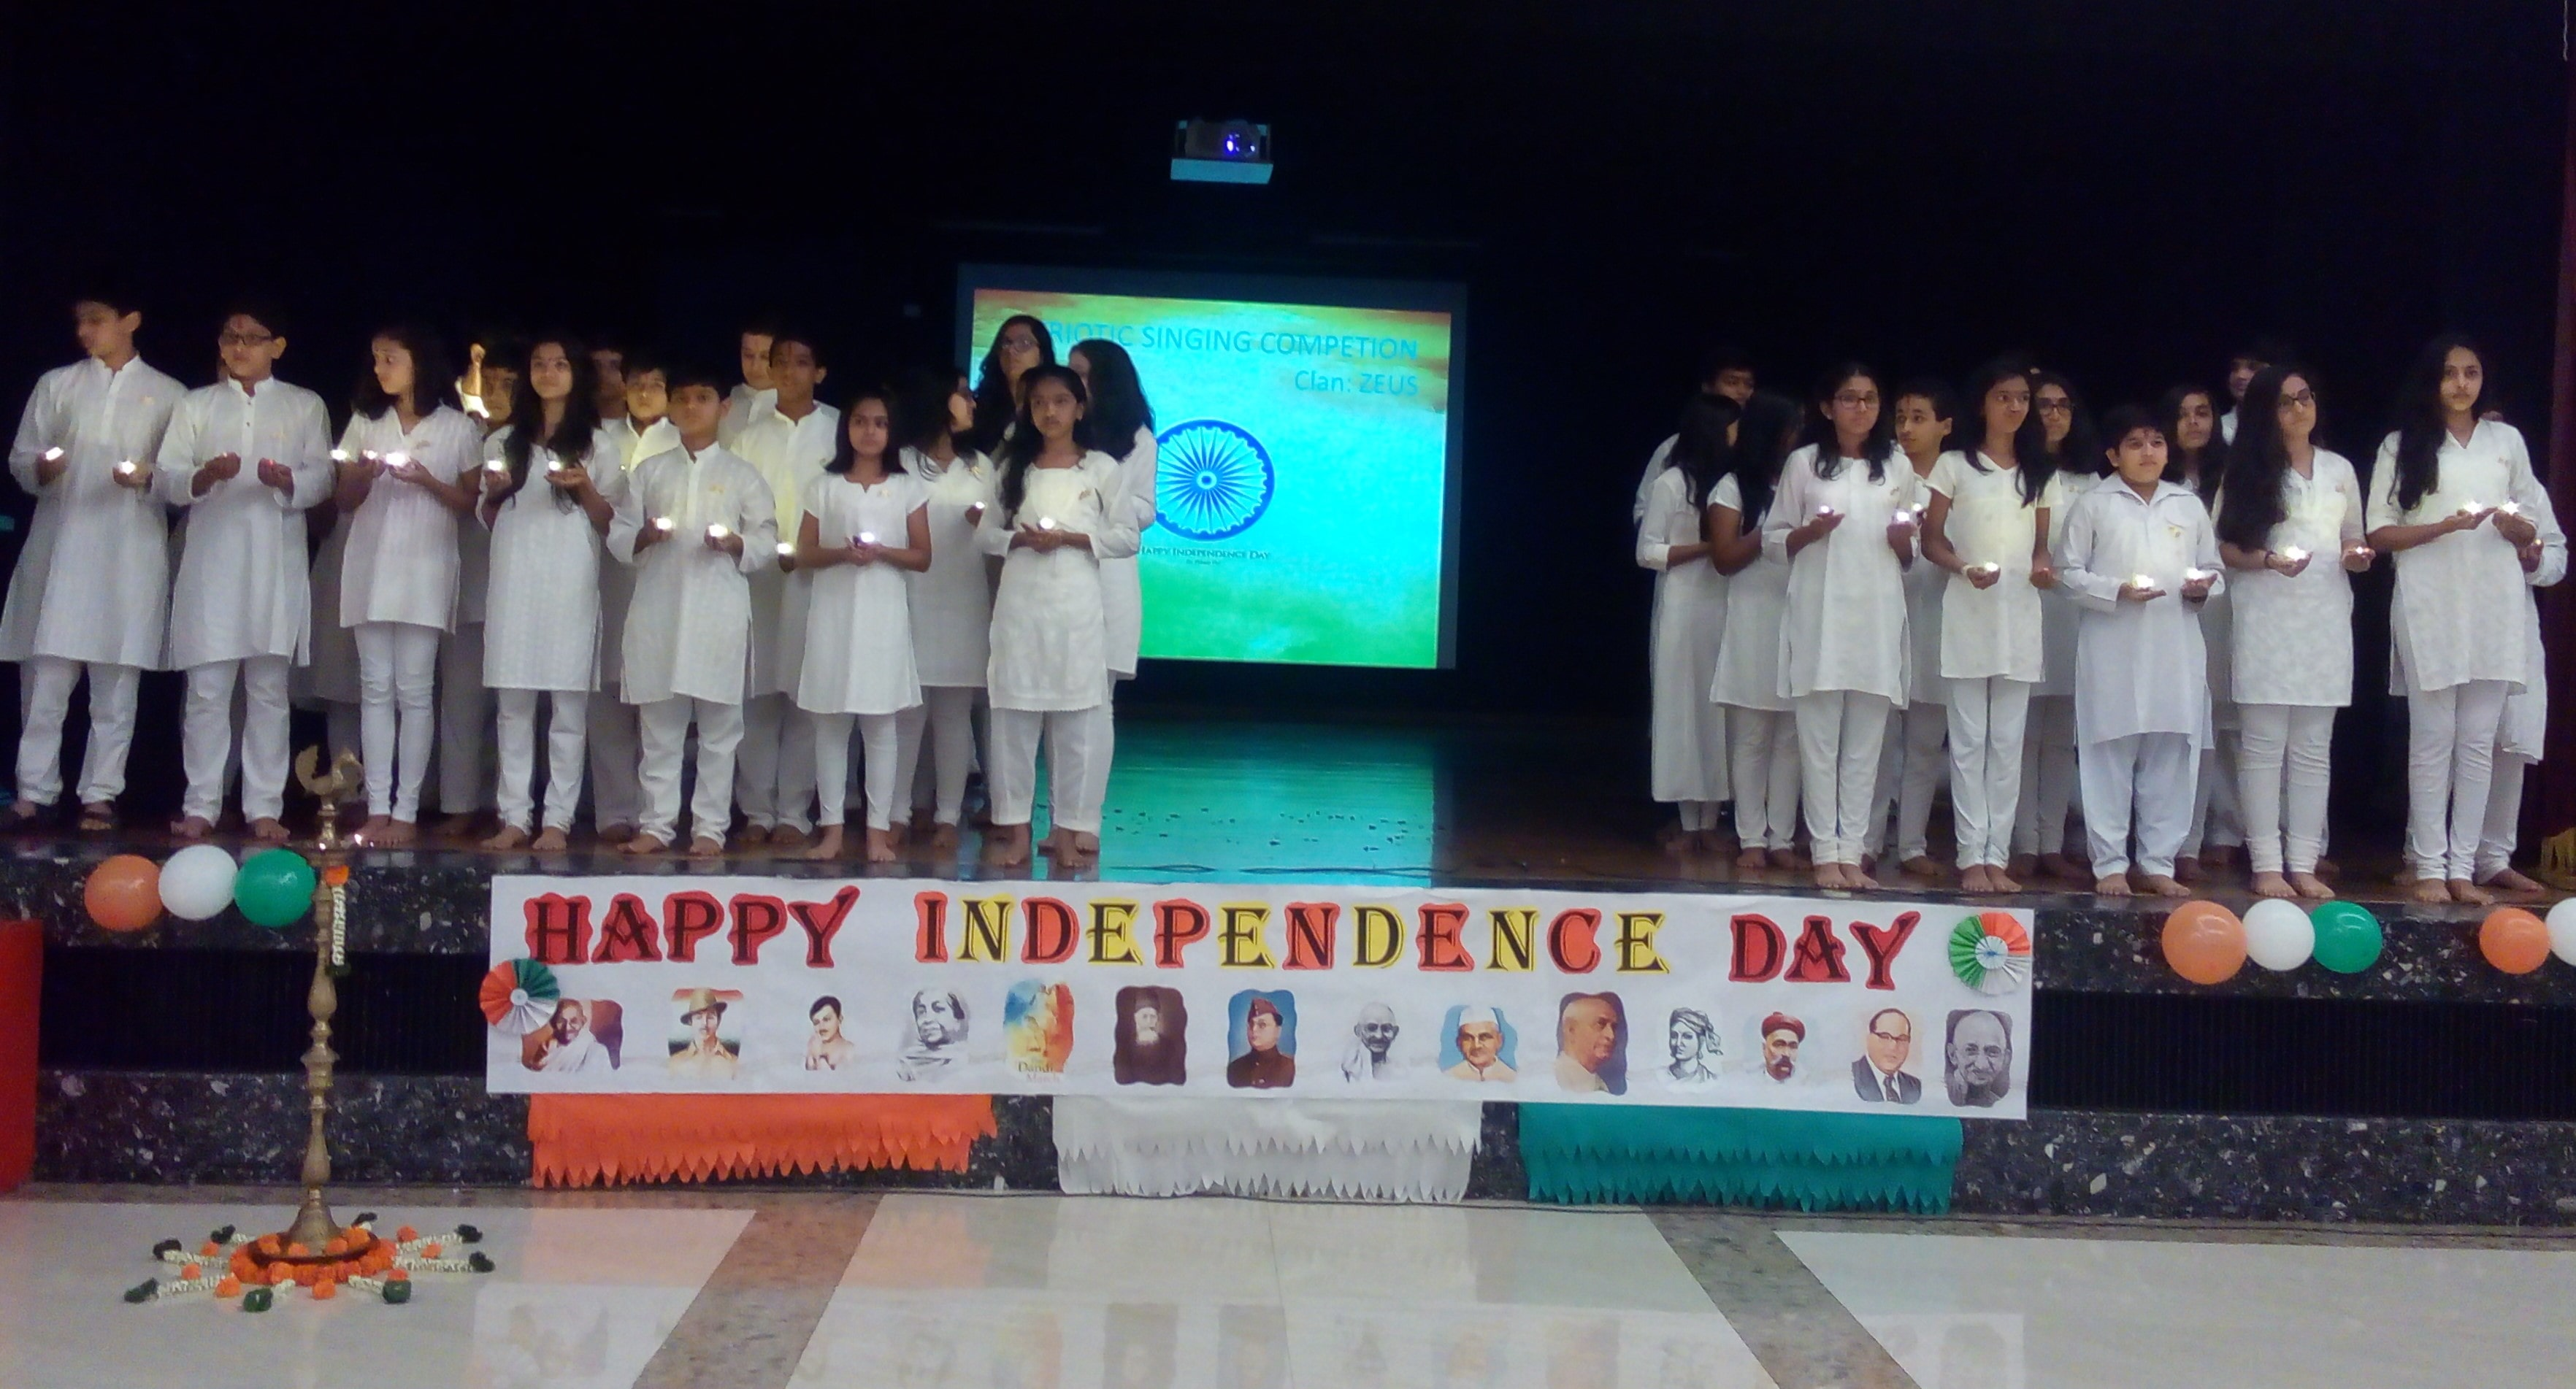 Independence day 2015 celebration